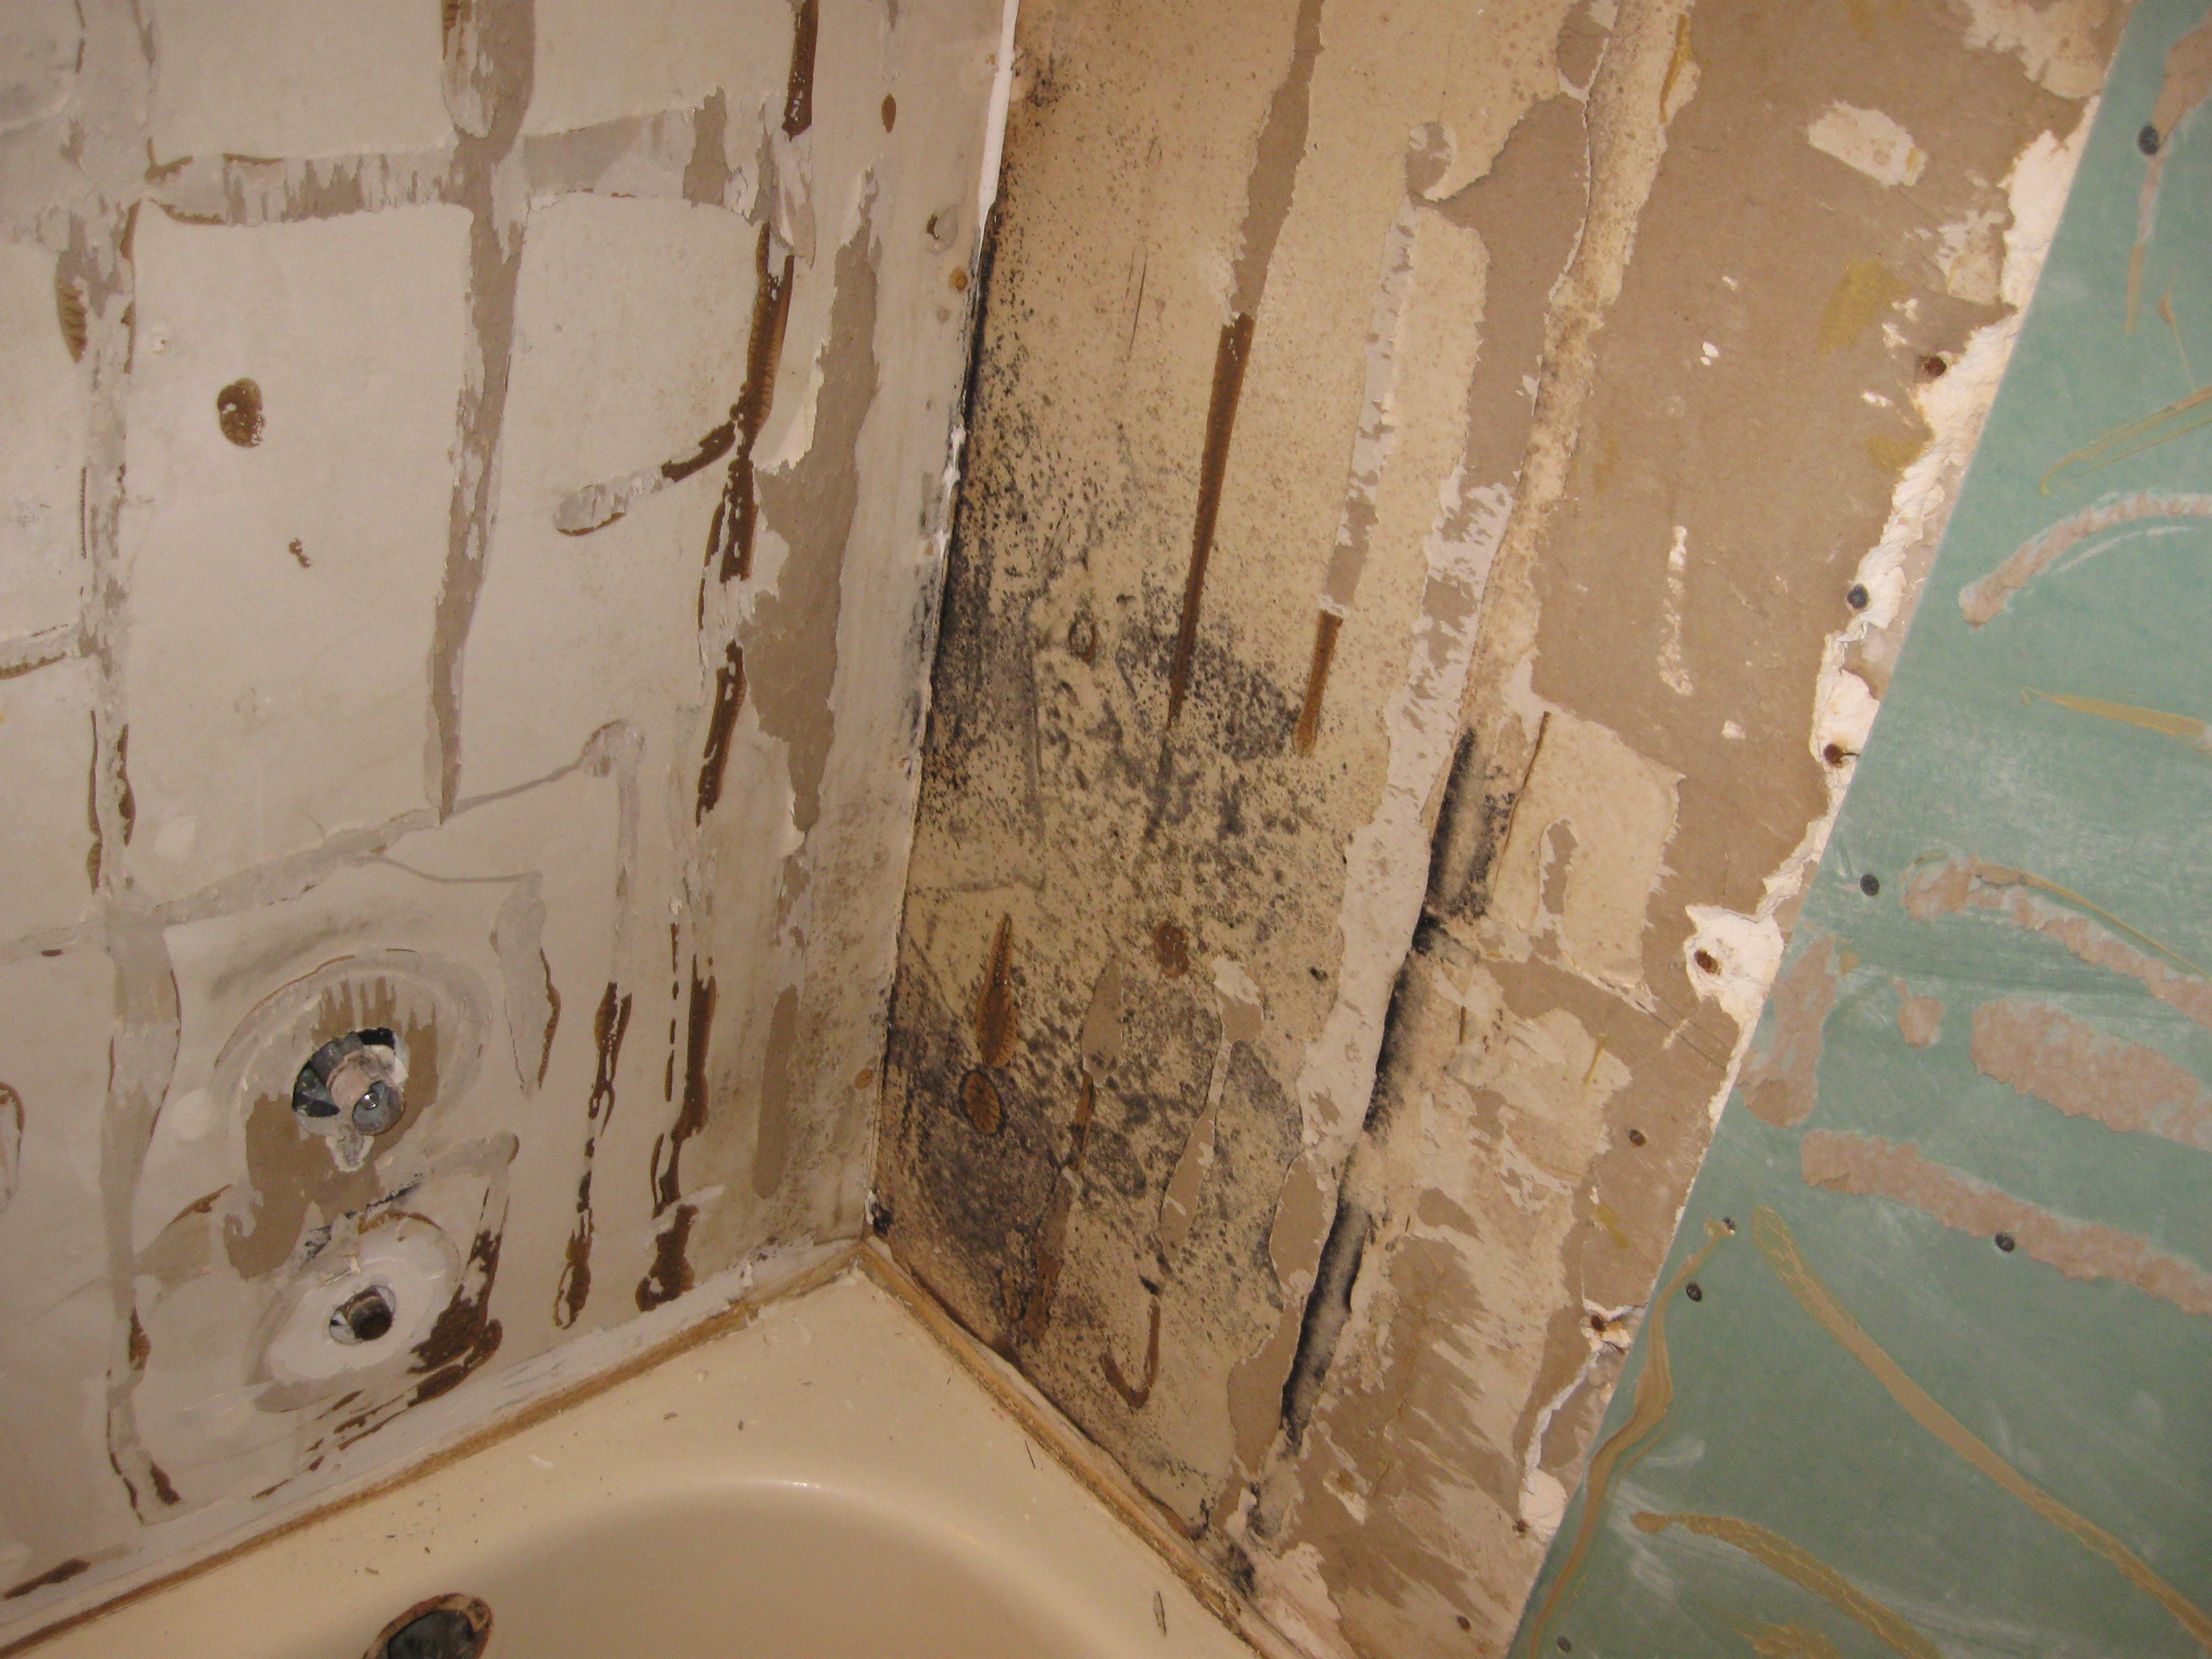 Get The 411 On Bathroom Mold